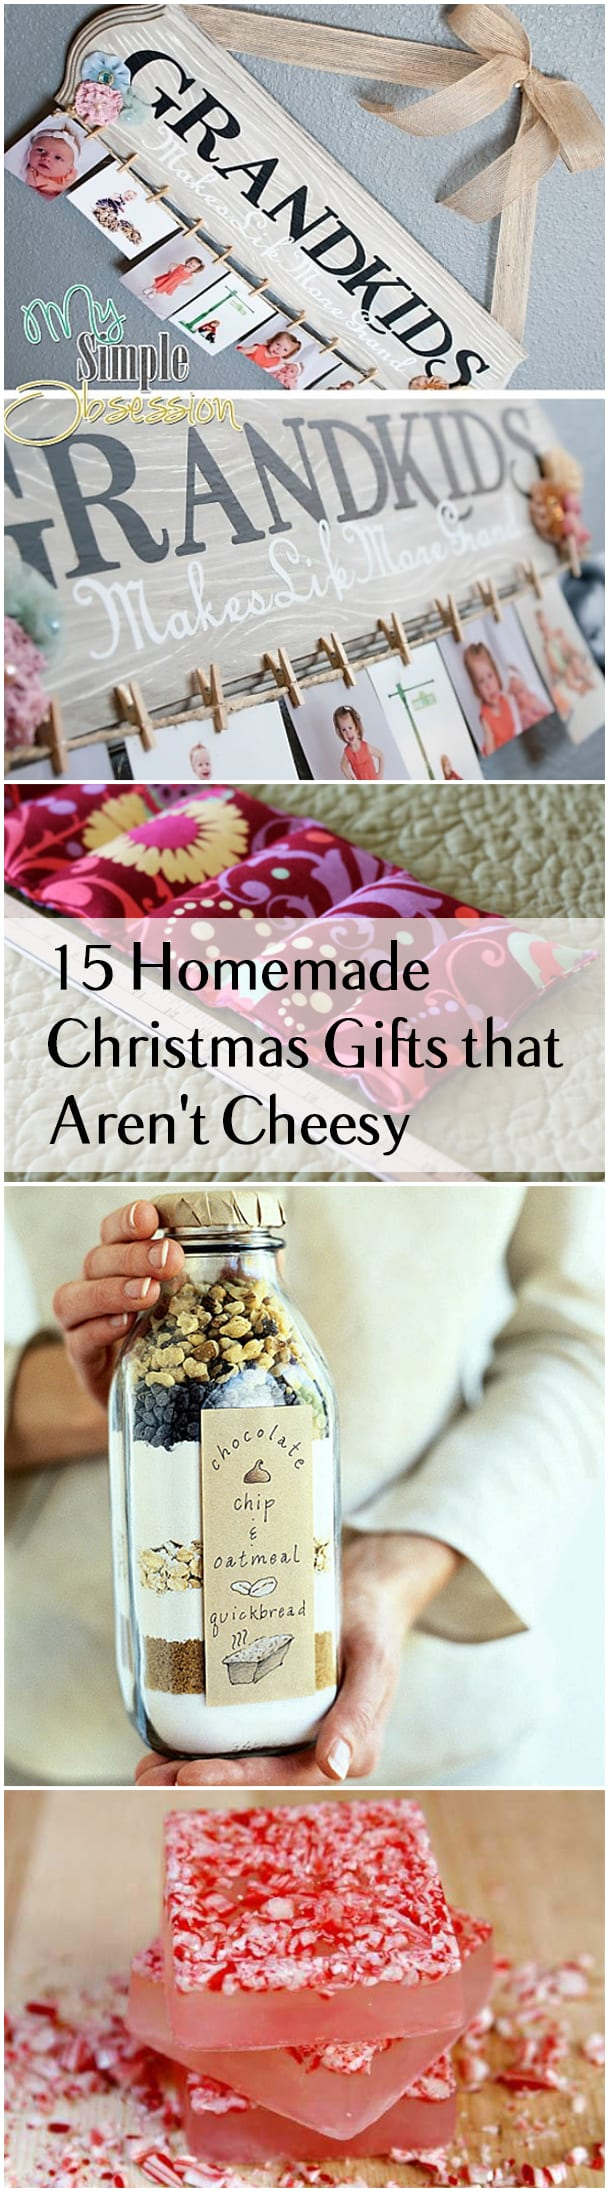 15 homemade christmas gifts that arent cheesy - Cheap Christmas Gifts For Family